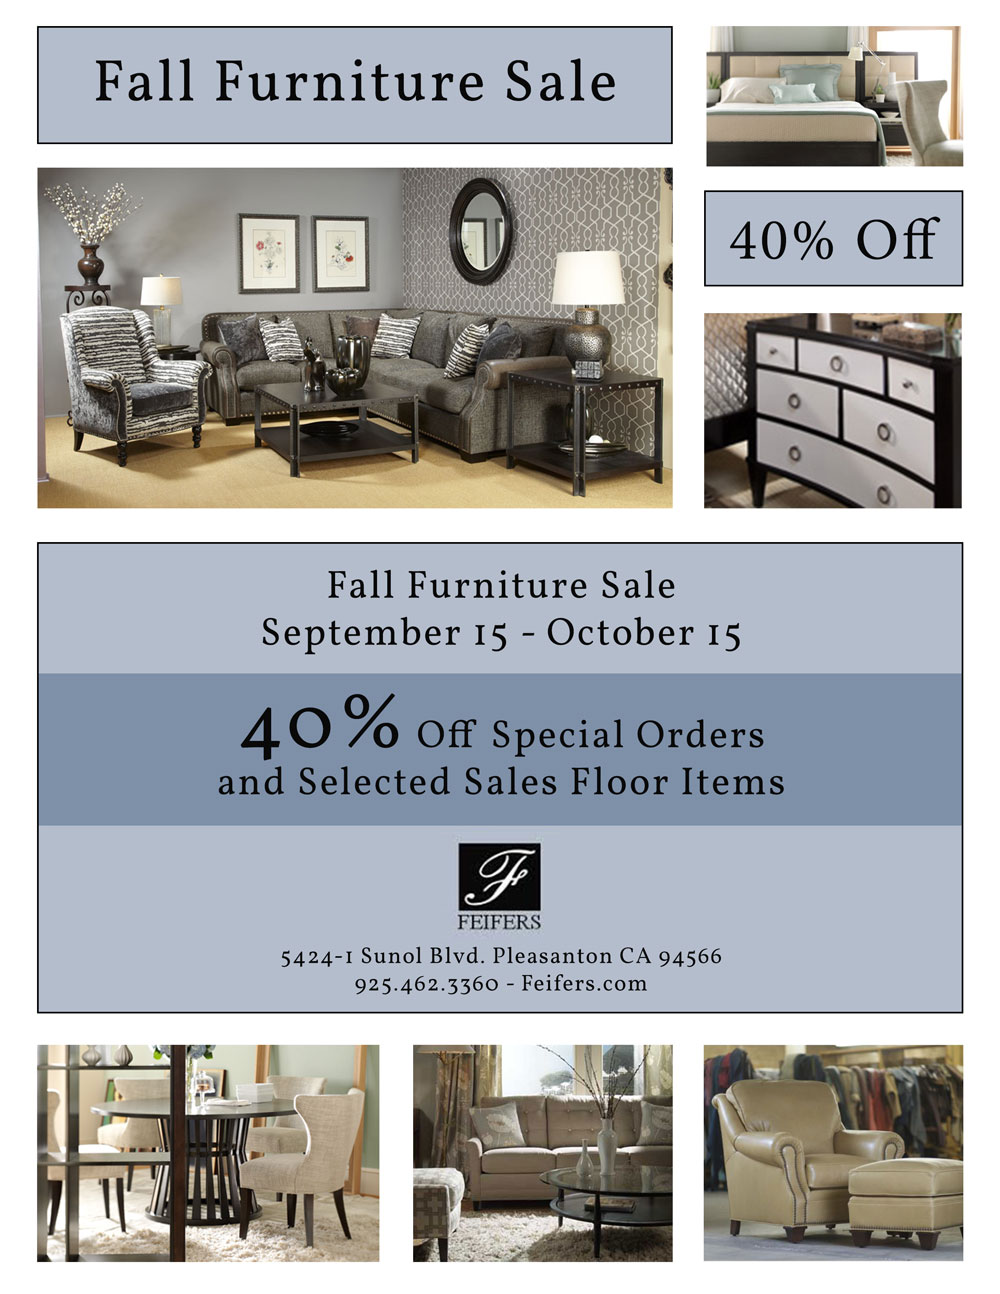 feifers-fall-sale-2014.jpg